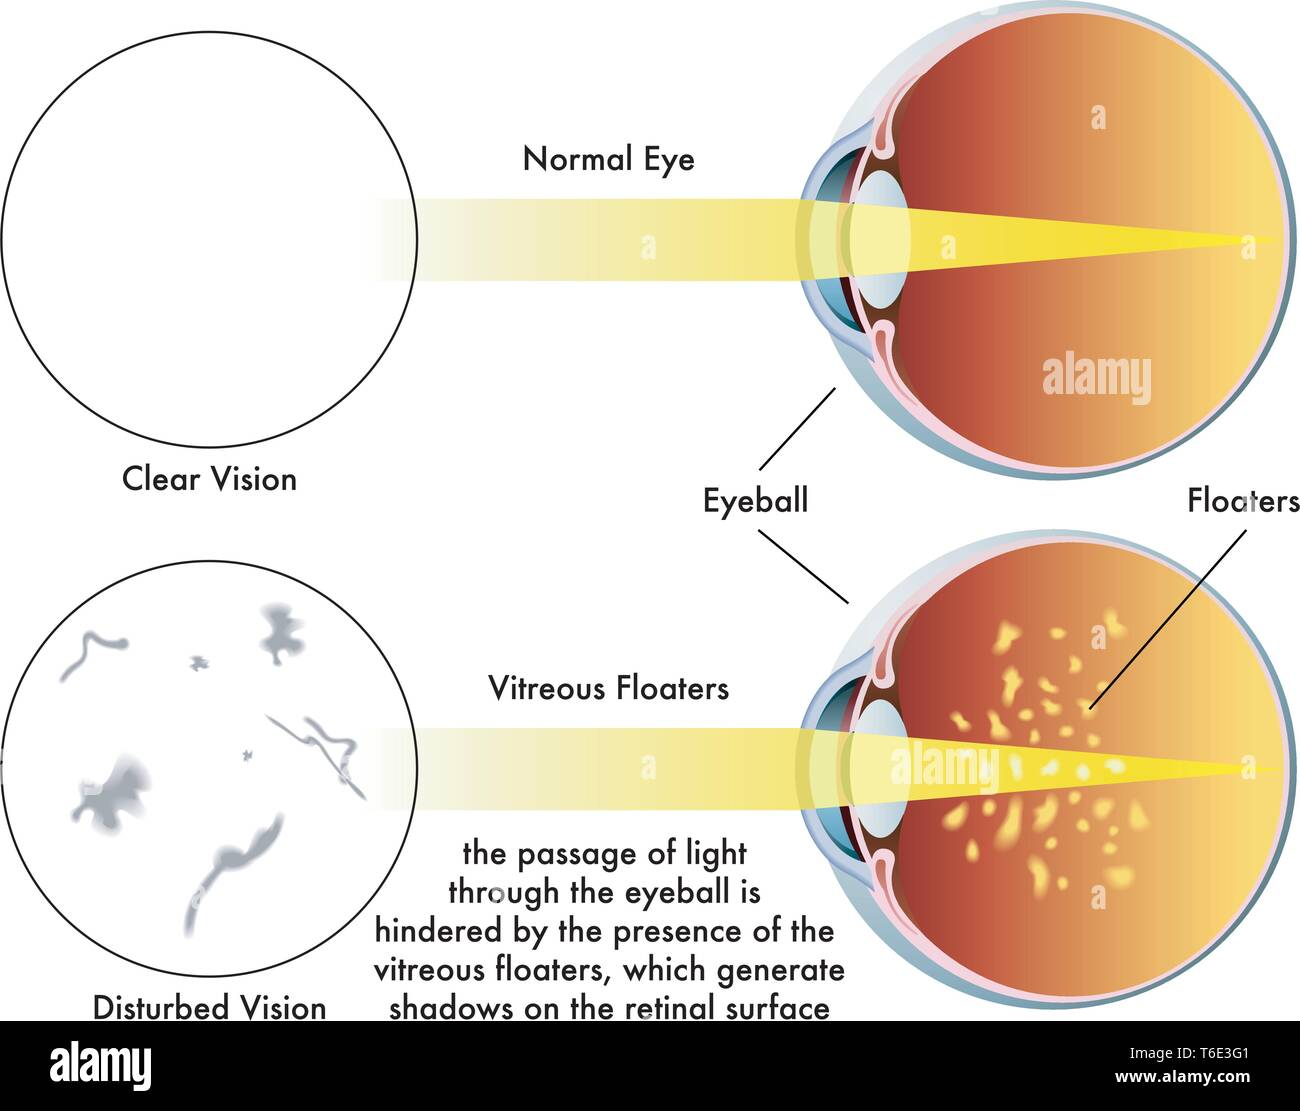 Medical illustration of the symptoms caused by vitreous floaters - Stock Image